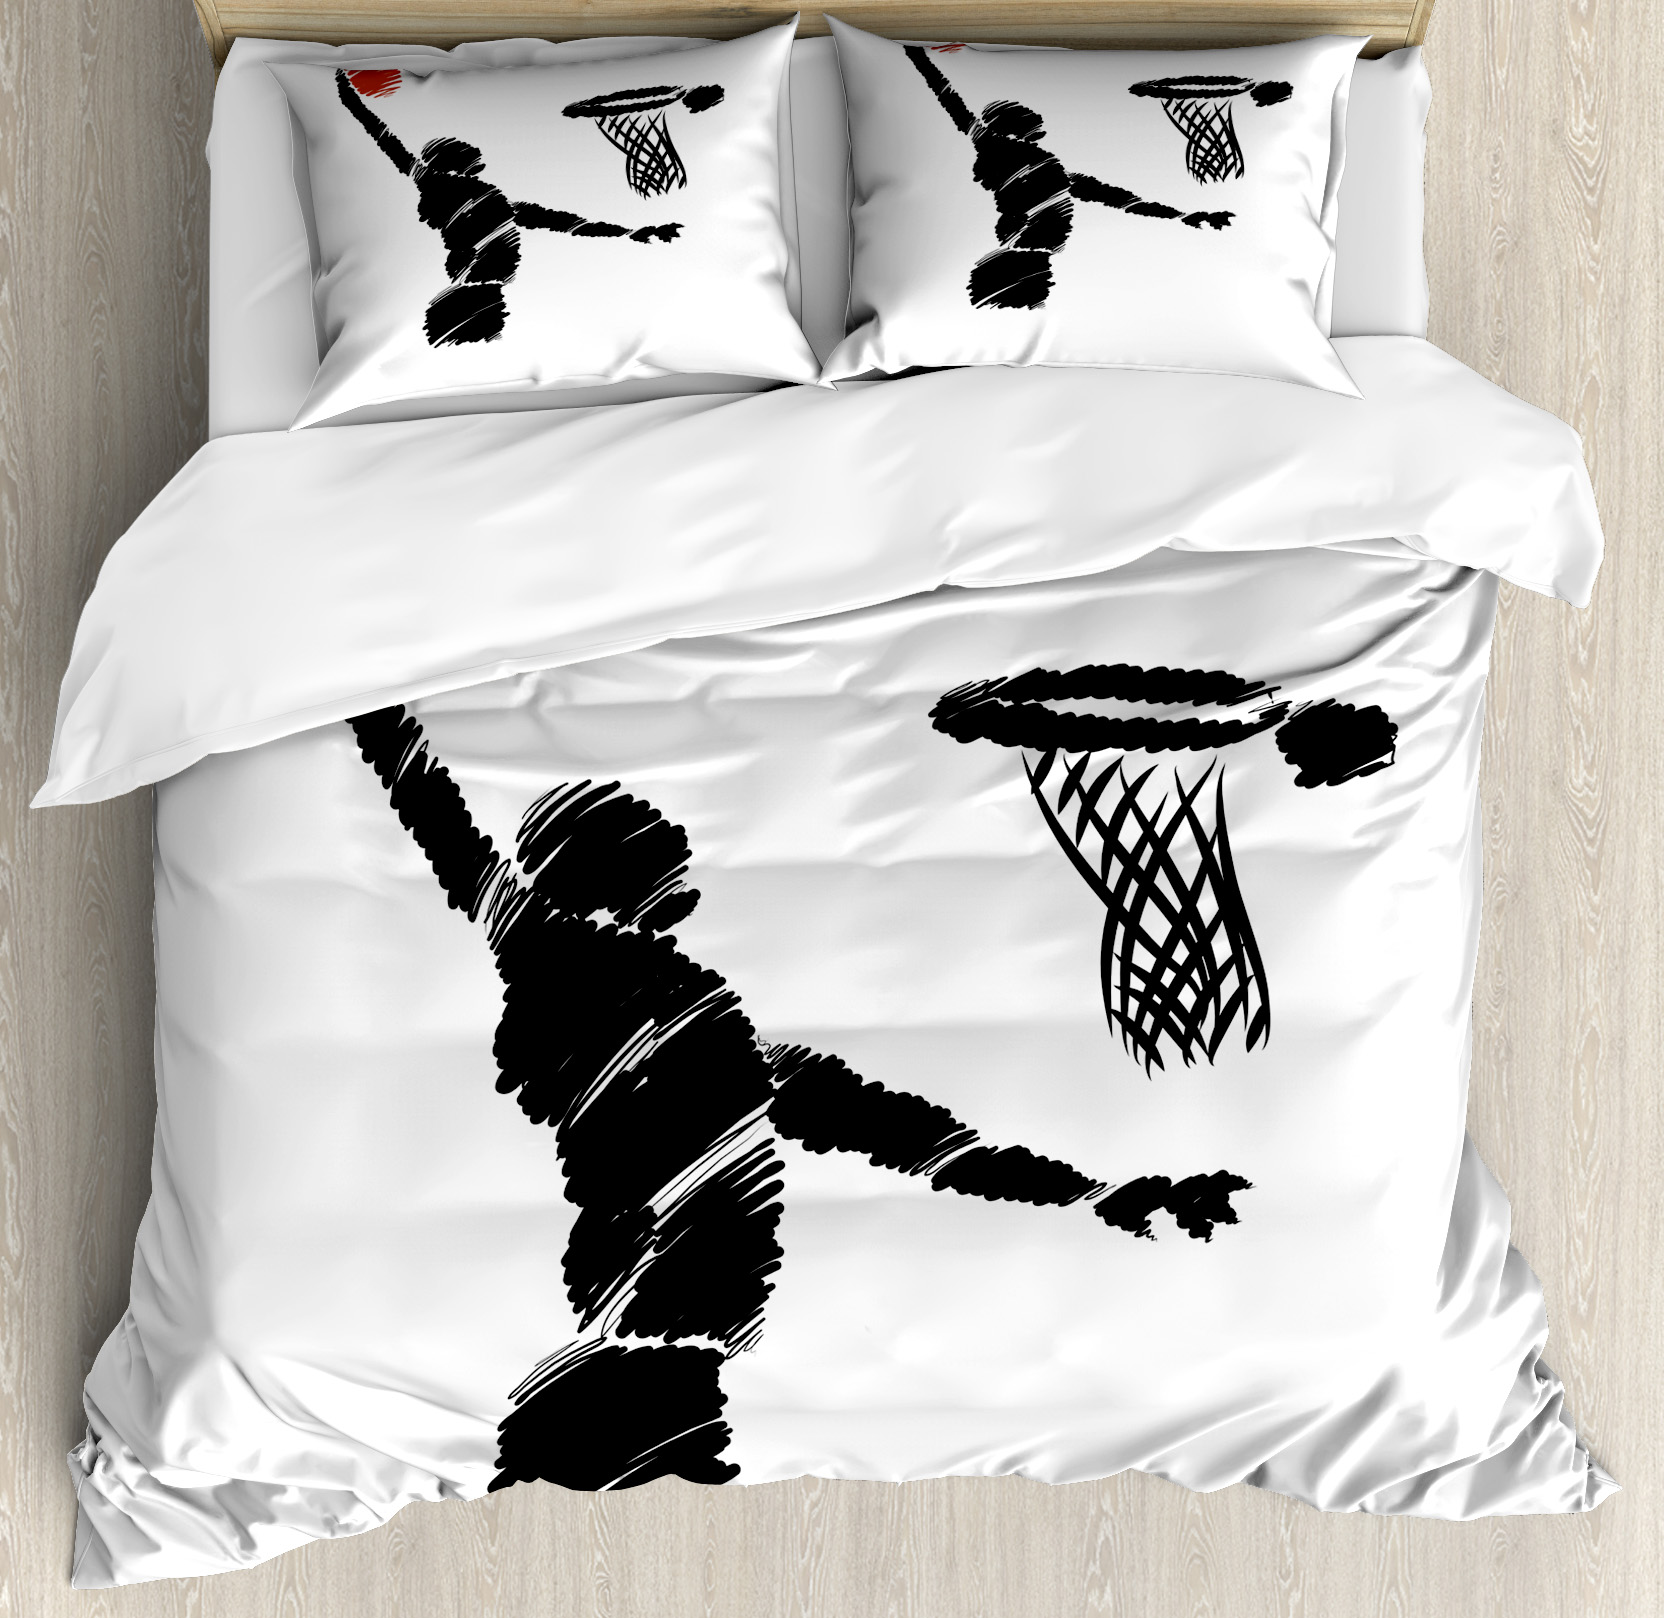 Youth Duvet Cover Set, Freehand Drawing Style Basketball Player Jumping Athlete Training Artwork, Decorative Bedding Set with Pillow Shams, Cinnamon Black White, by Ambesonne